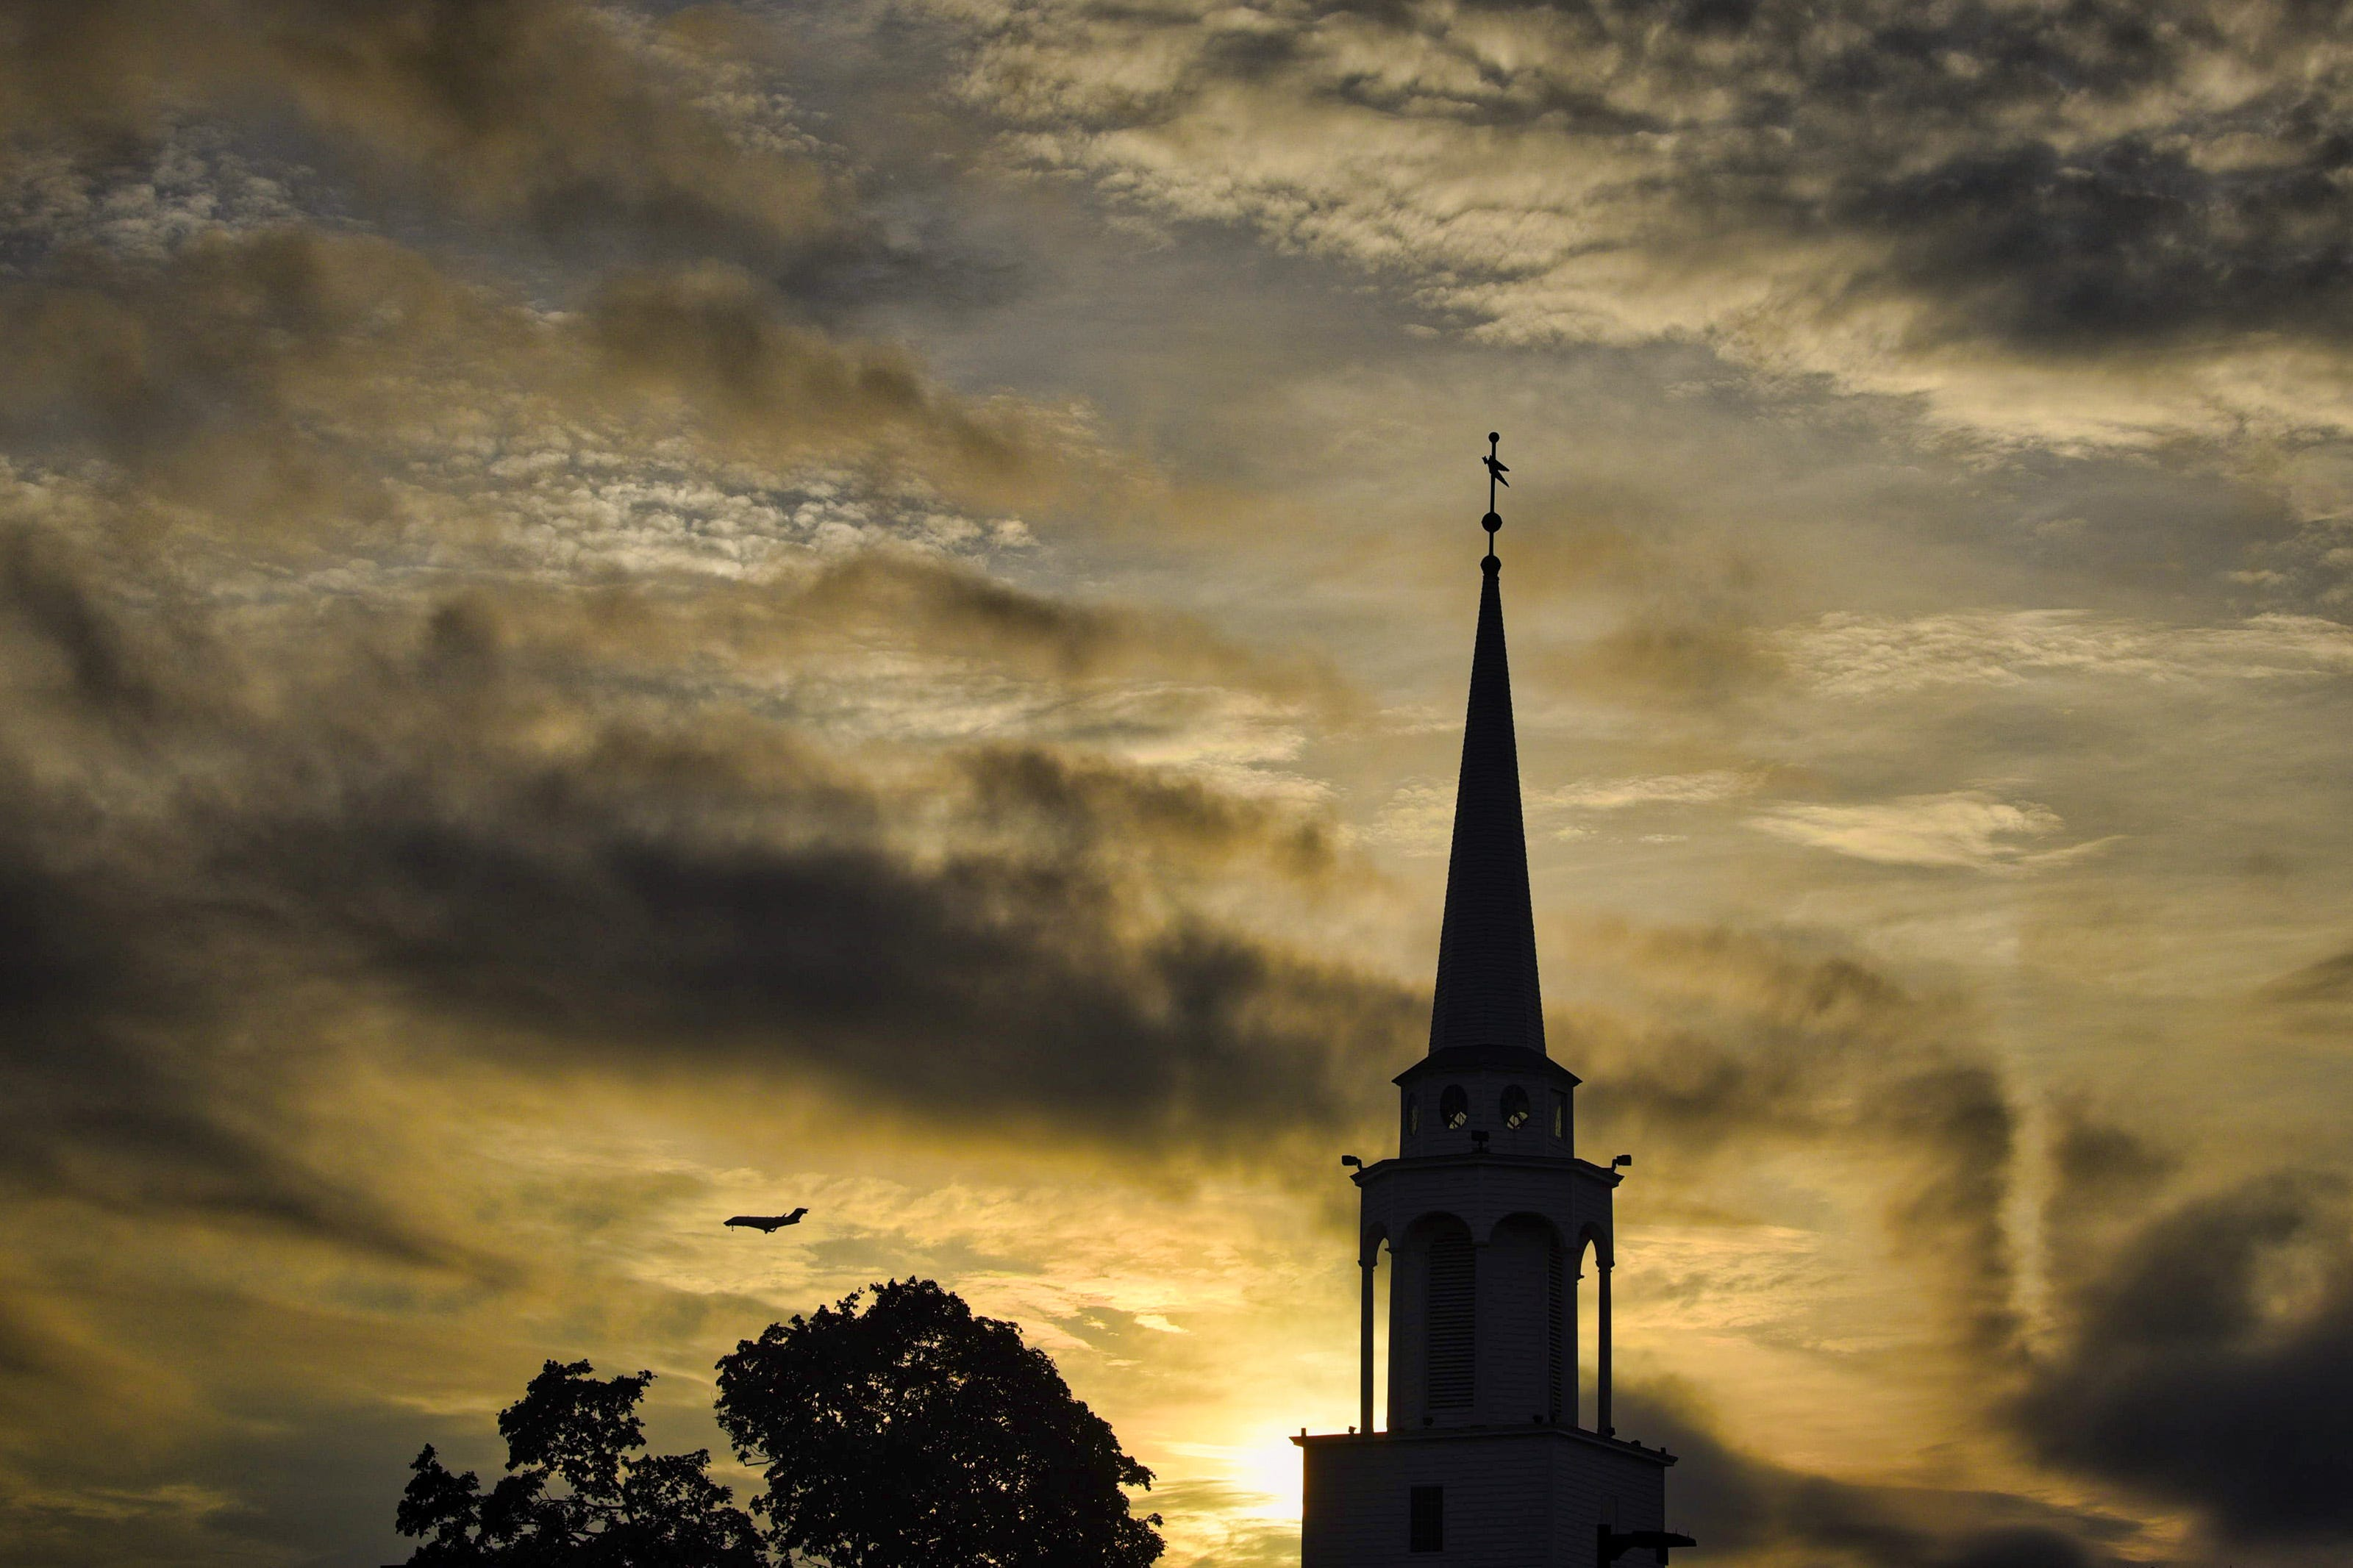 The First Presbyterian Church at 64 Passaic Street is silhouetted against a dramatic evening sky with the sun setting, as a jet flies in the background over Hackensack on 08/17/21.